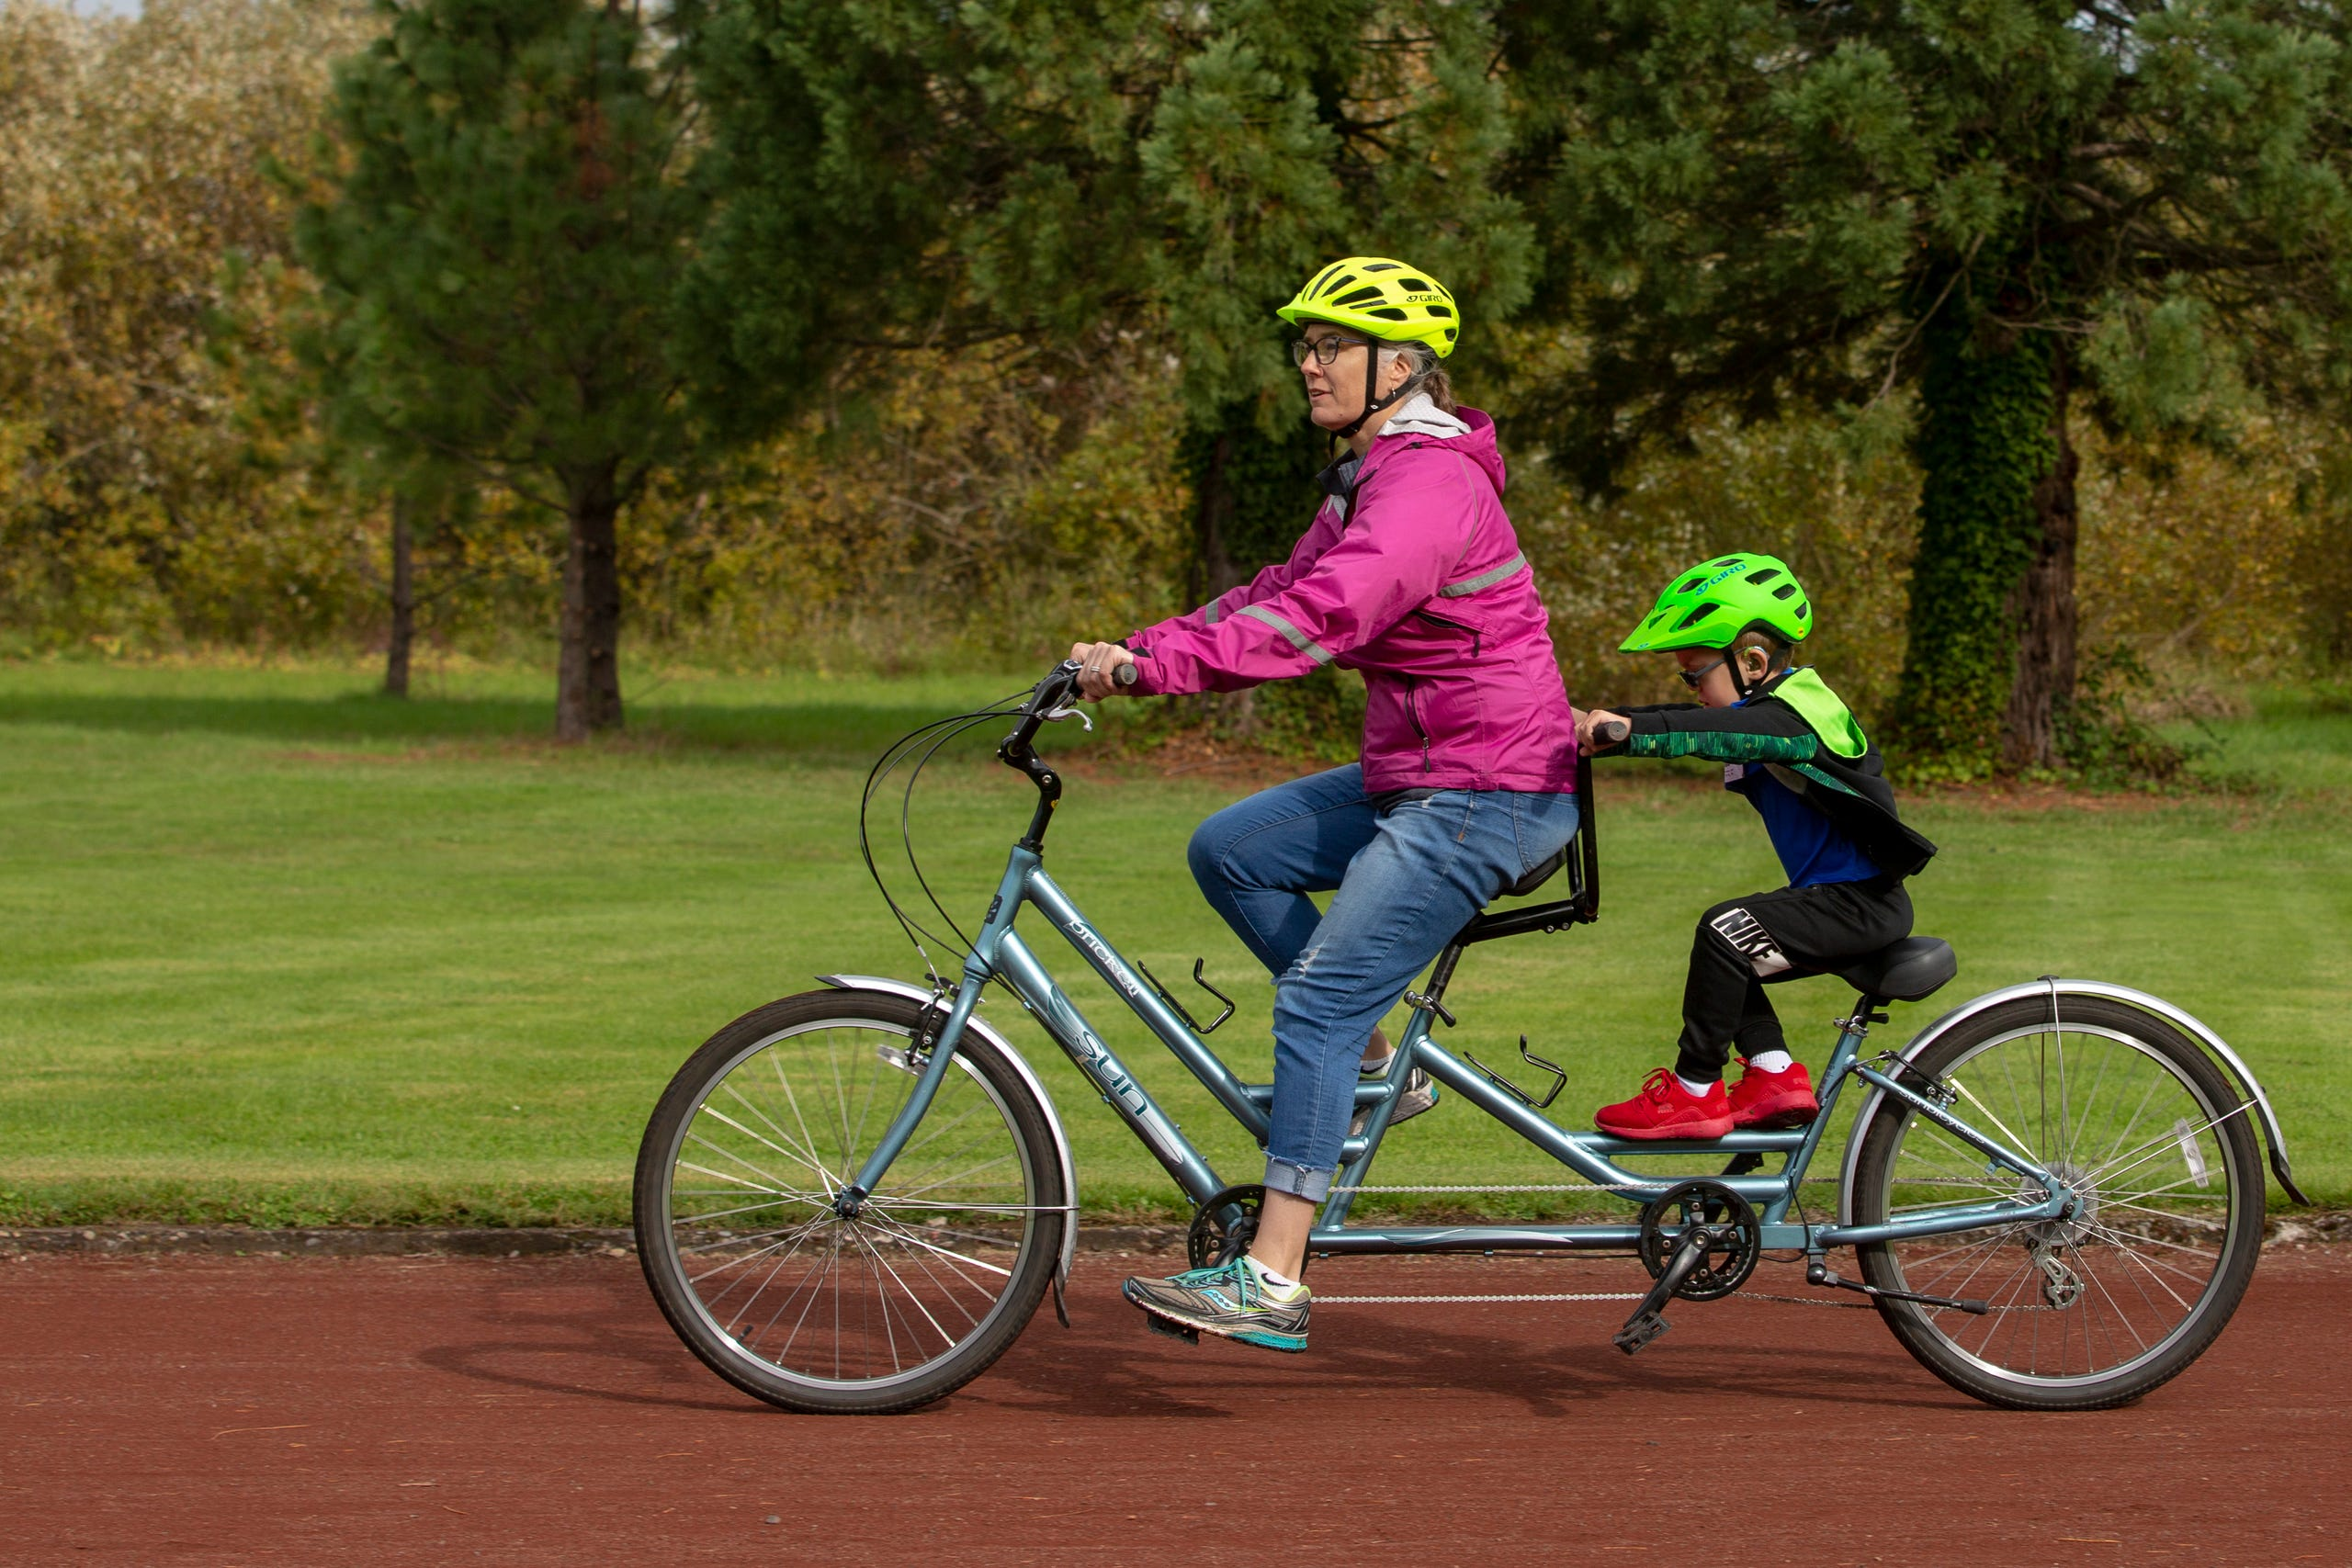 "Tandem biking instructor Kate Dillsworth and first-grader Hugo Olsen take a lap around the track at the Oregon School for the Deaf in Salem, Oct. 4, 2019. NWABA, the Northwest Association for Blind Athletes, hosted a ""Paralympic experience"" for students with visual impairments in the state. After the Oregon School for the Blind closed in 2009, many visually impaired students and their families lost access to state-funded resources, like sports programs. The BVIS (Blind Visually Impaired Student) Fund gives programs like NWABA funds to enhance the lives of low vision/blind children across the state."